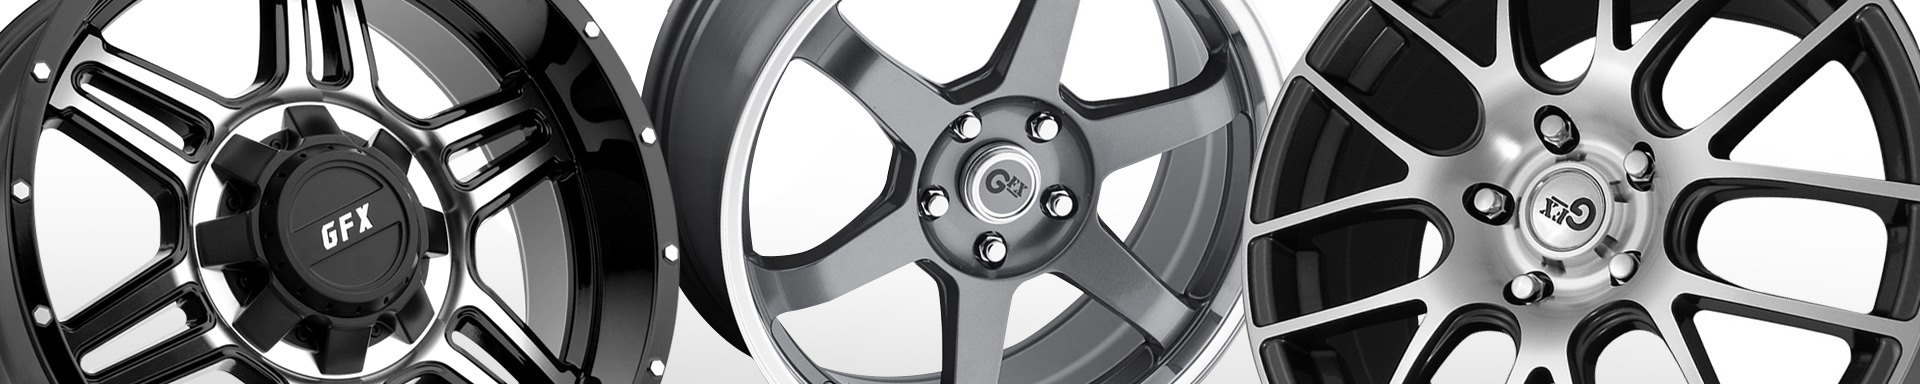 Universal G-FX WHEELS & RIMS